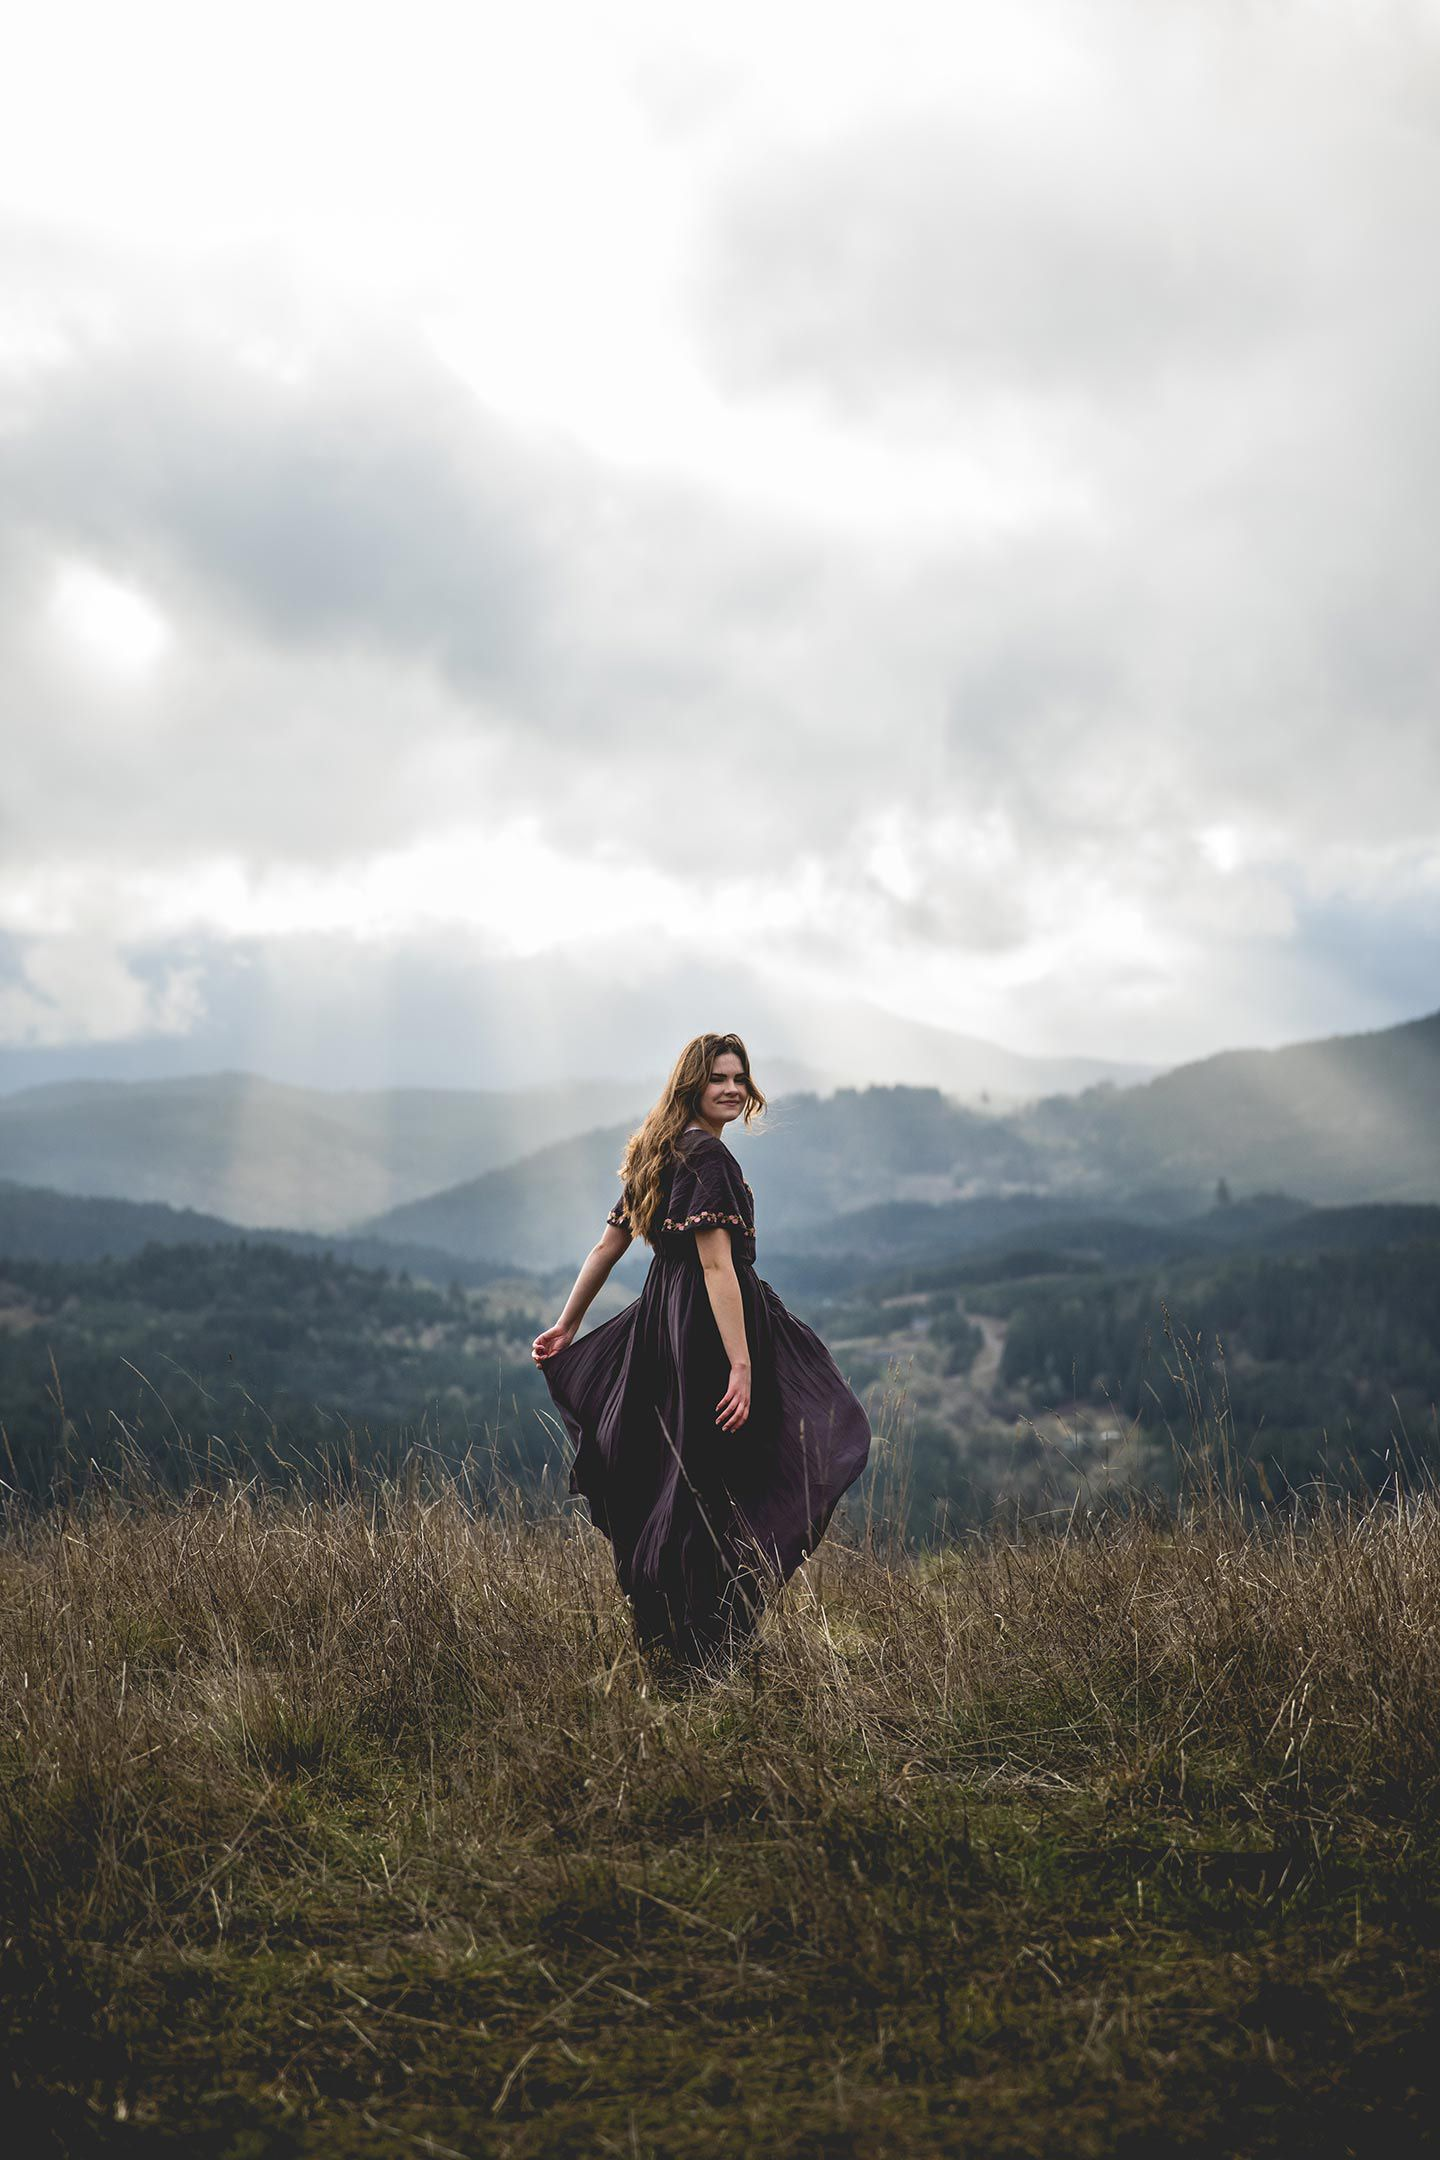 senior girl smiling and walking on a hill with the mountain and sun peaking through the clouds in the background.